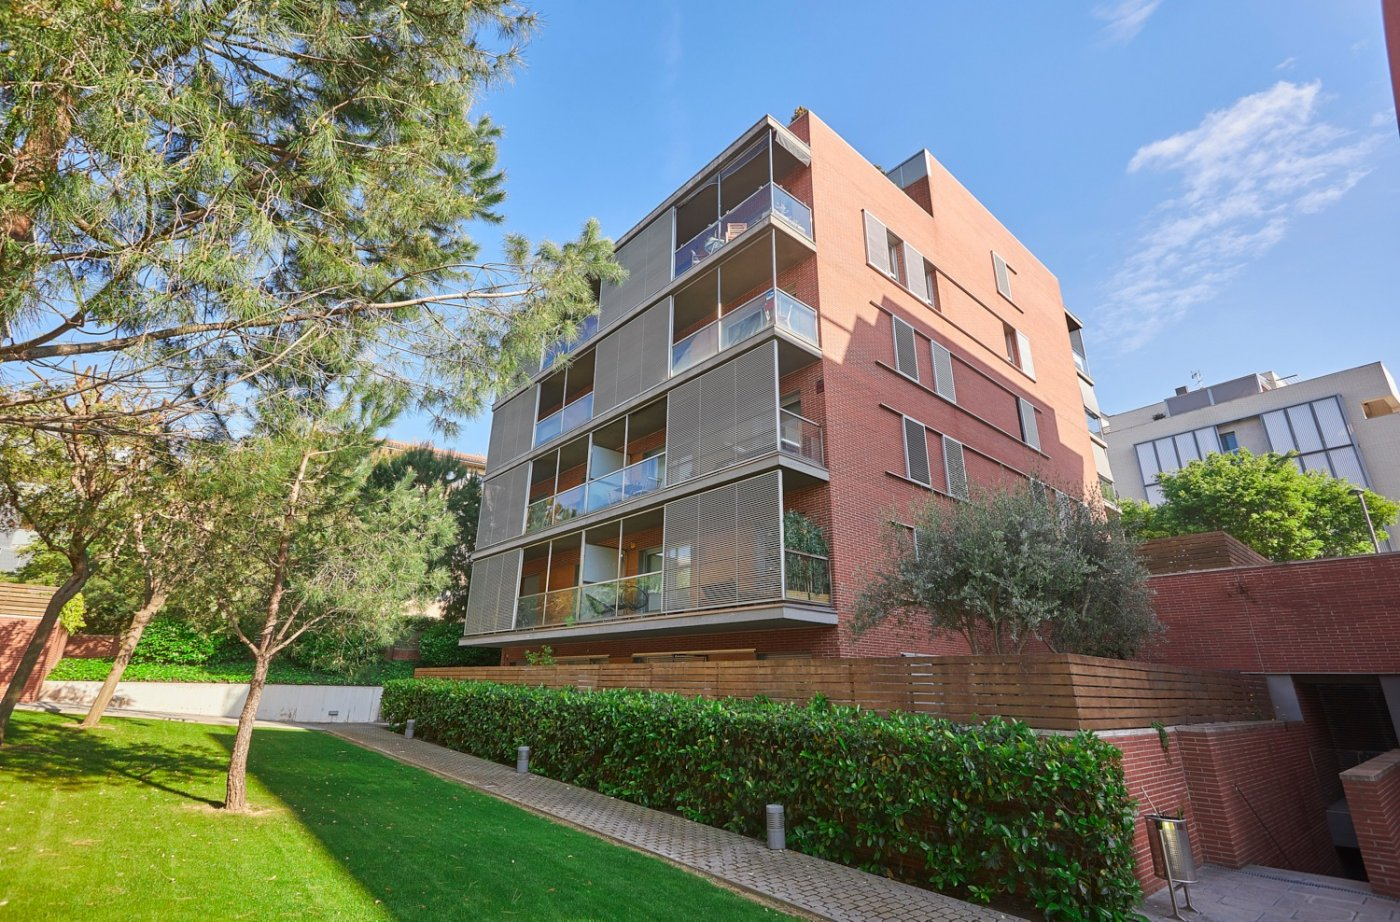 Flat for sale in Volpelleres, Sant Cugat del Valles